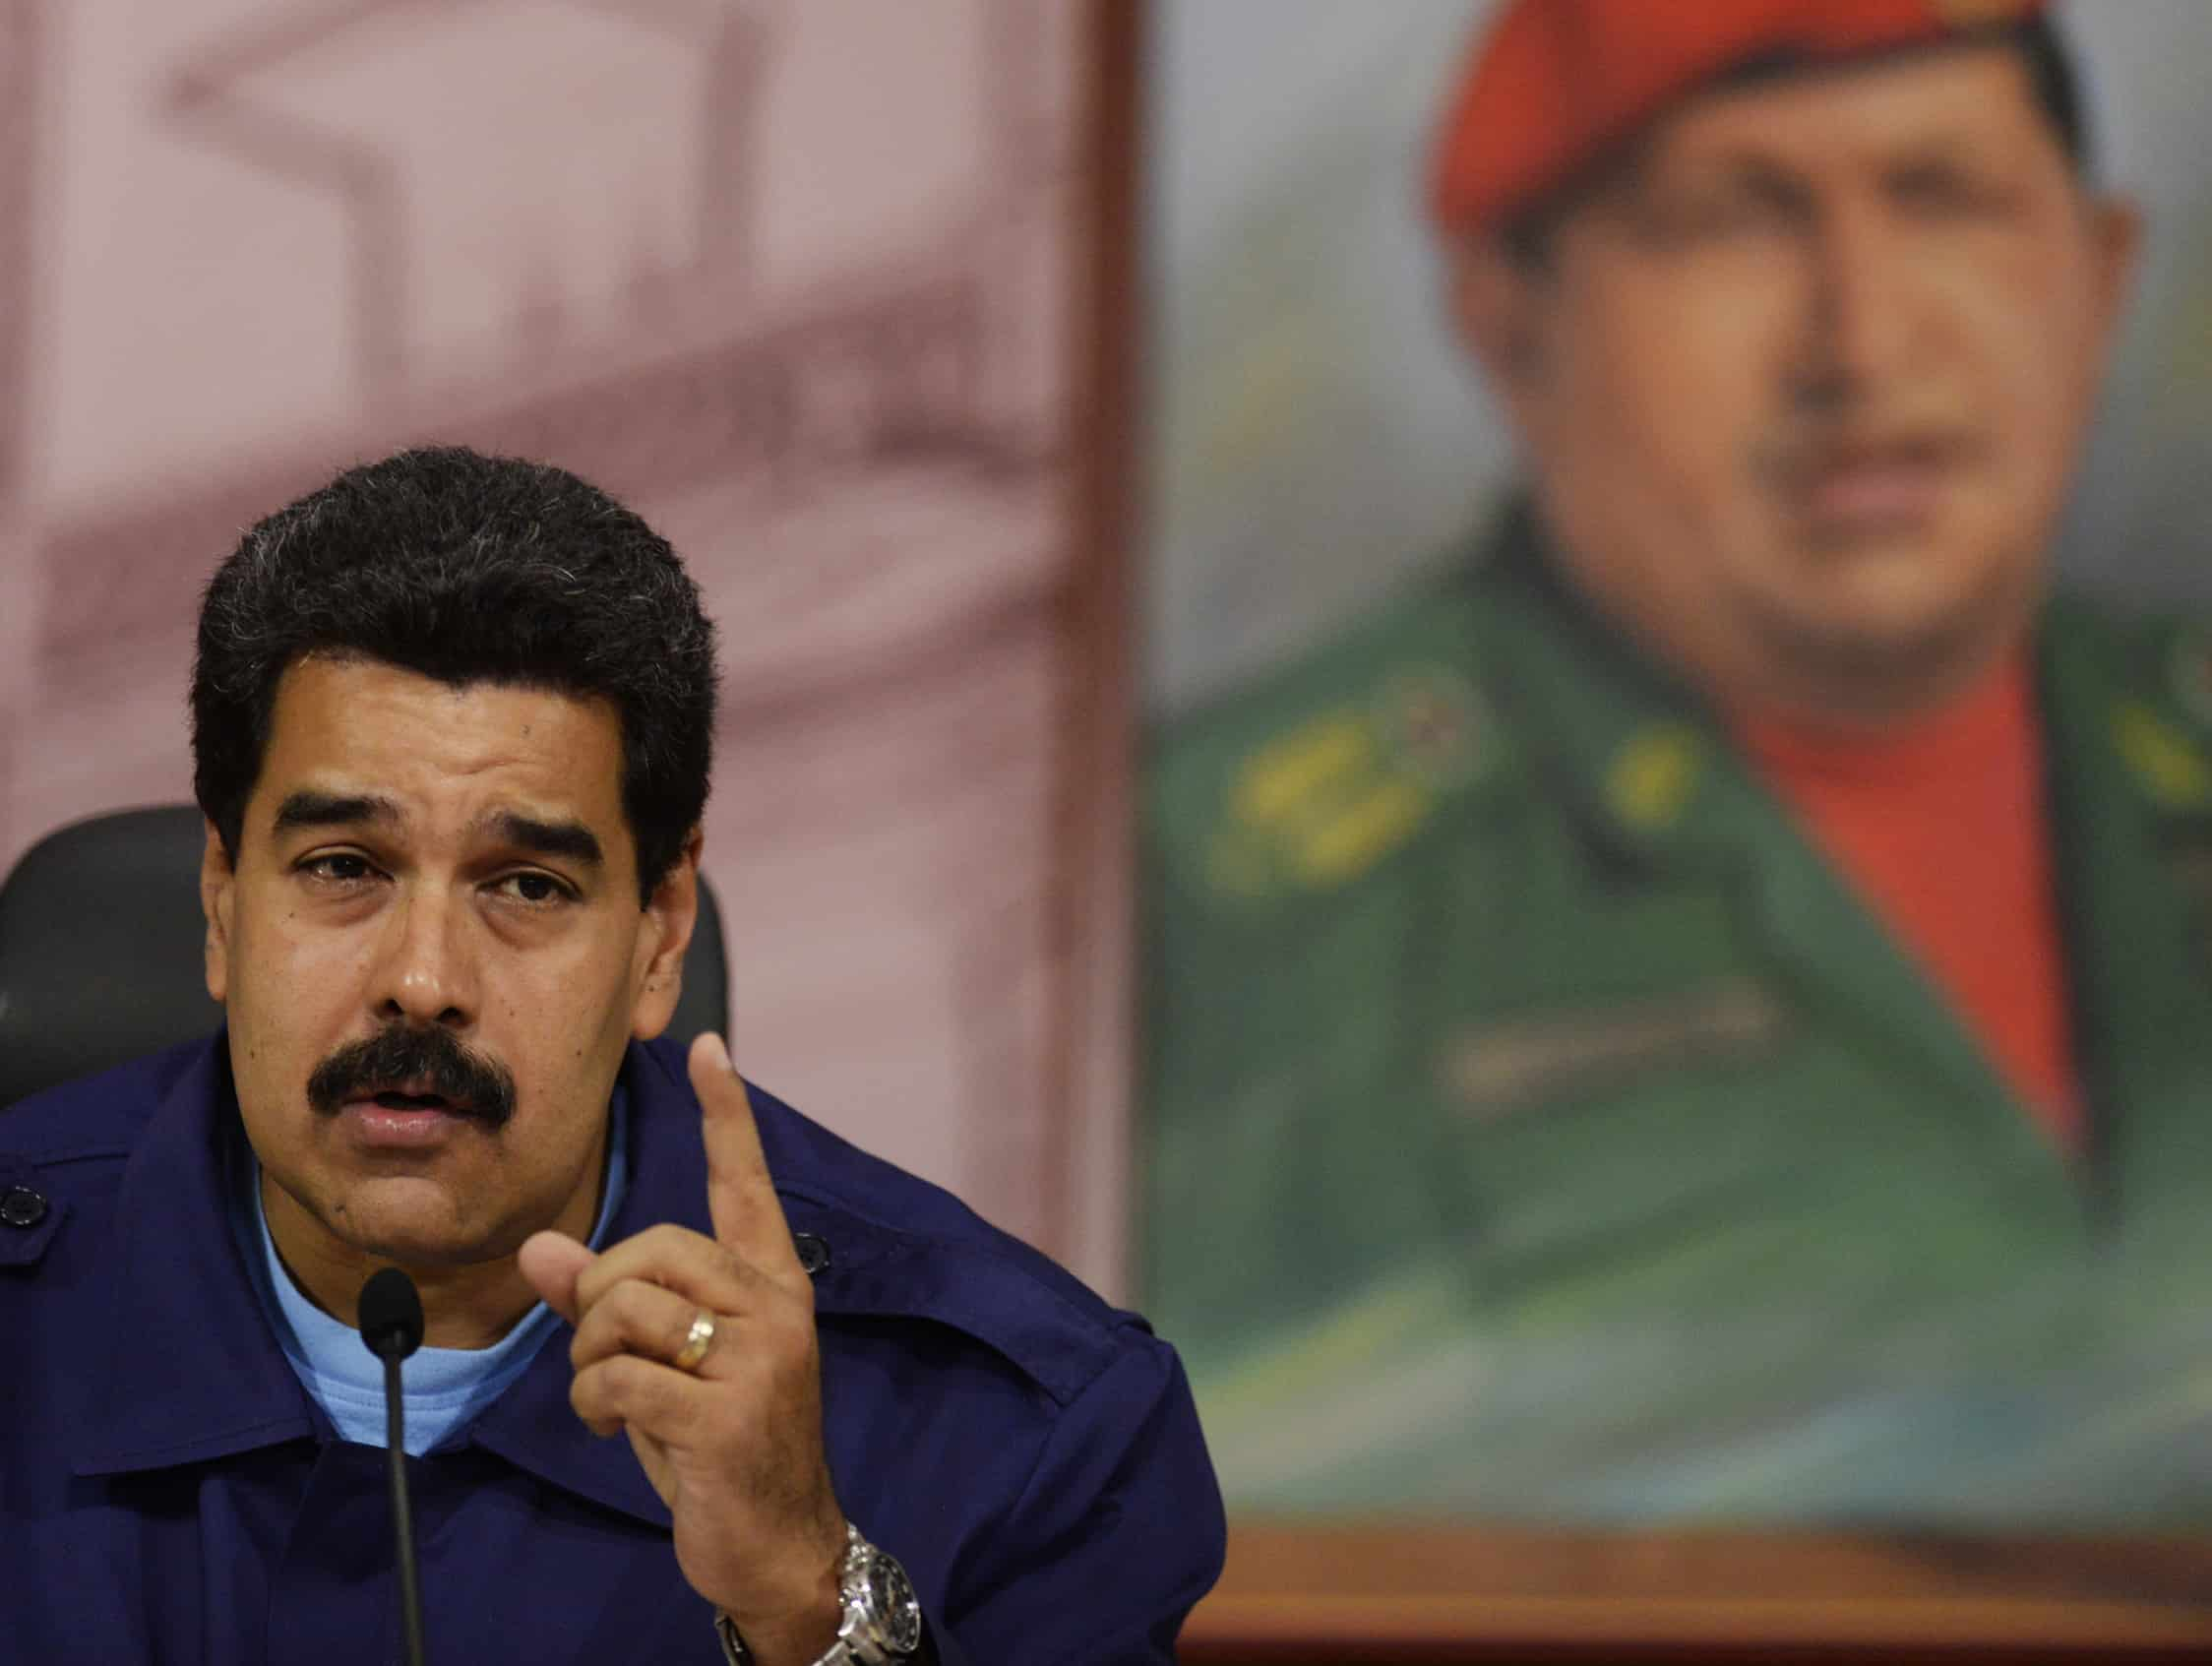 Venezuelan President Nicolás Maduro speaks during a press conference.